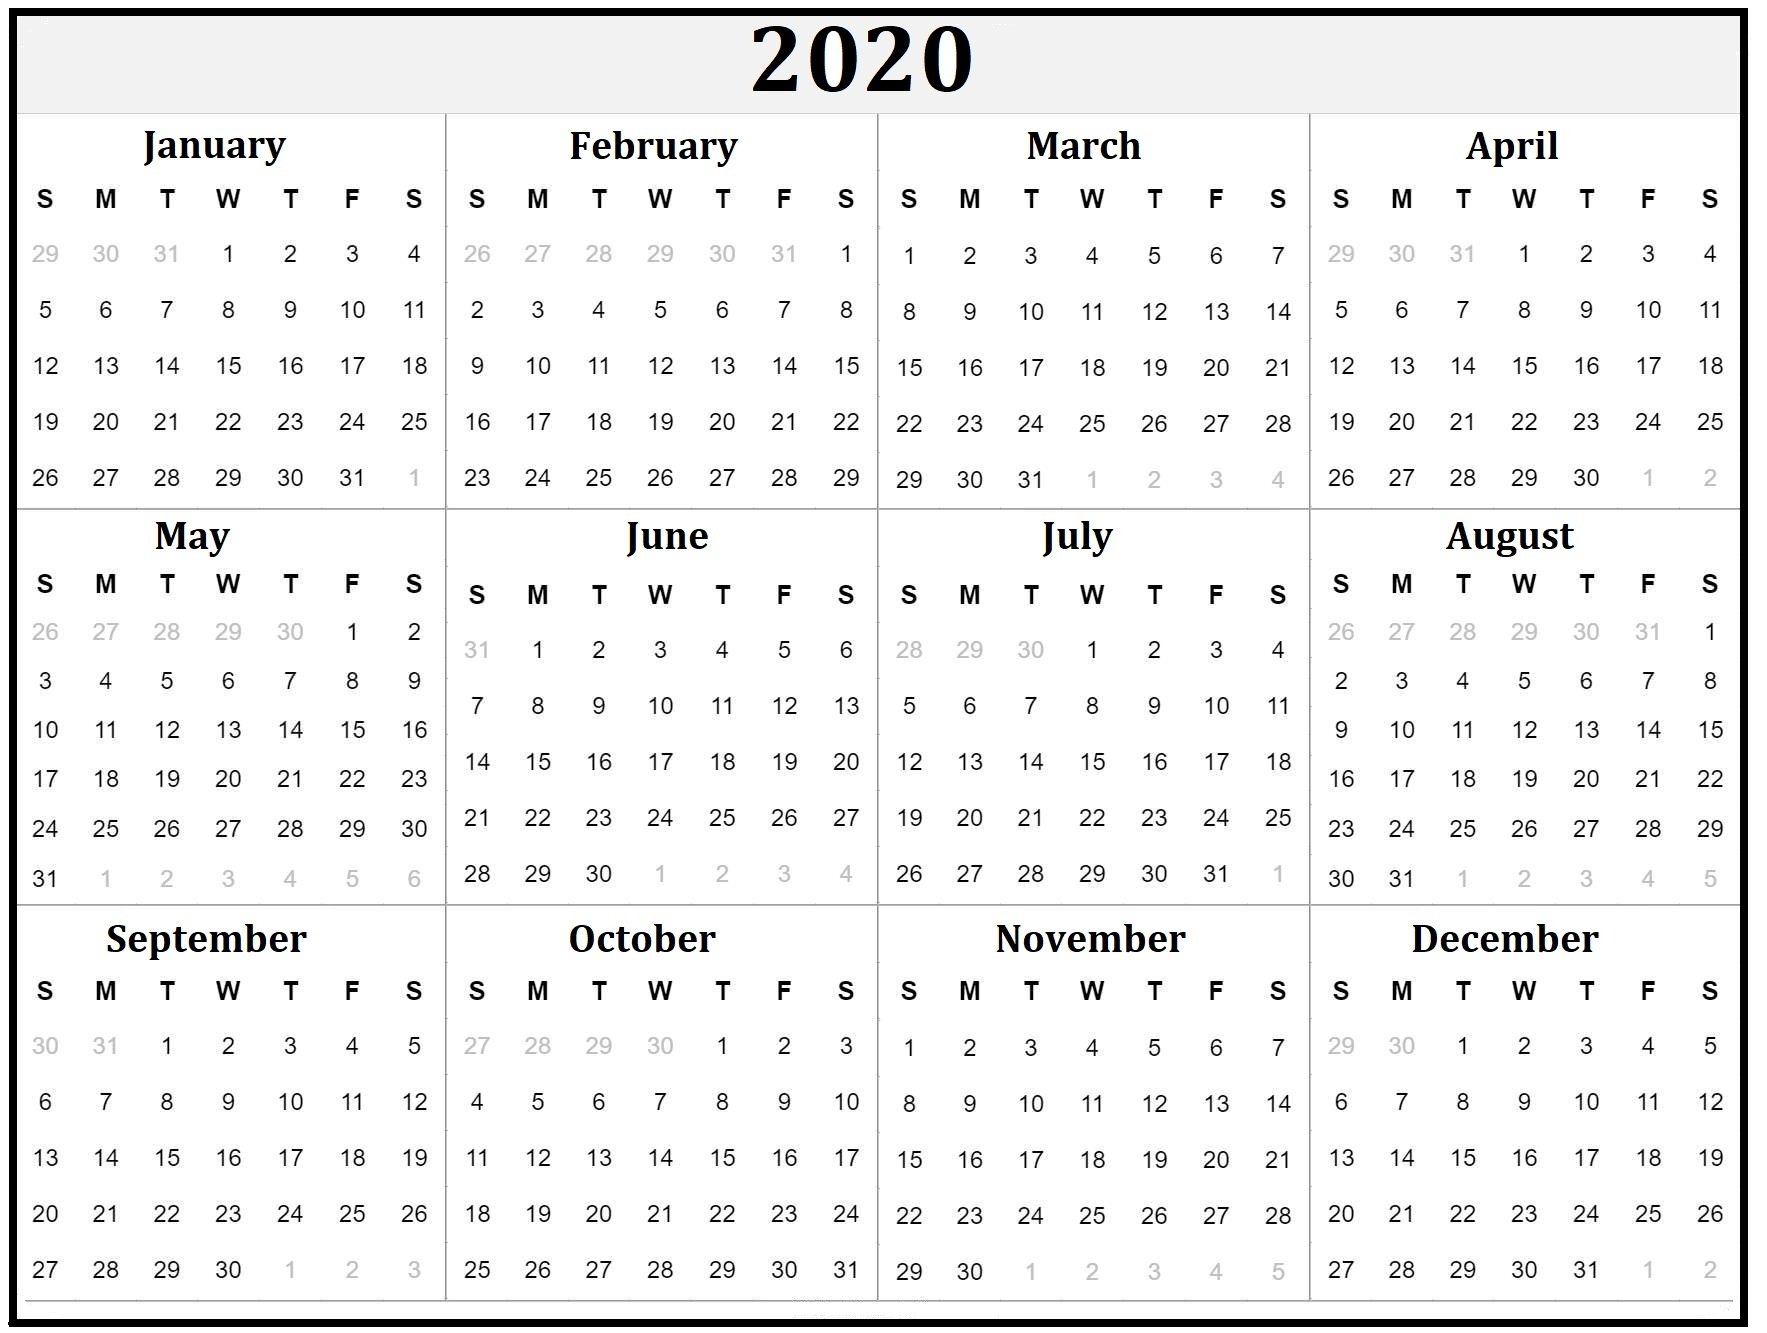 Printable Yearly Calendar 2020 - Calendars For The Whole Year